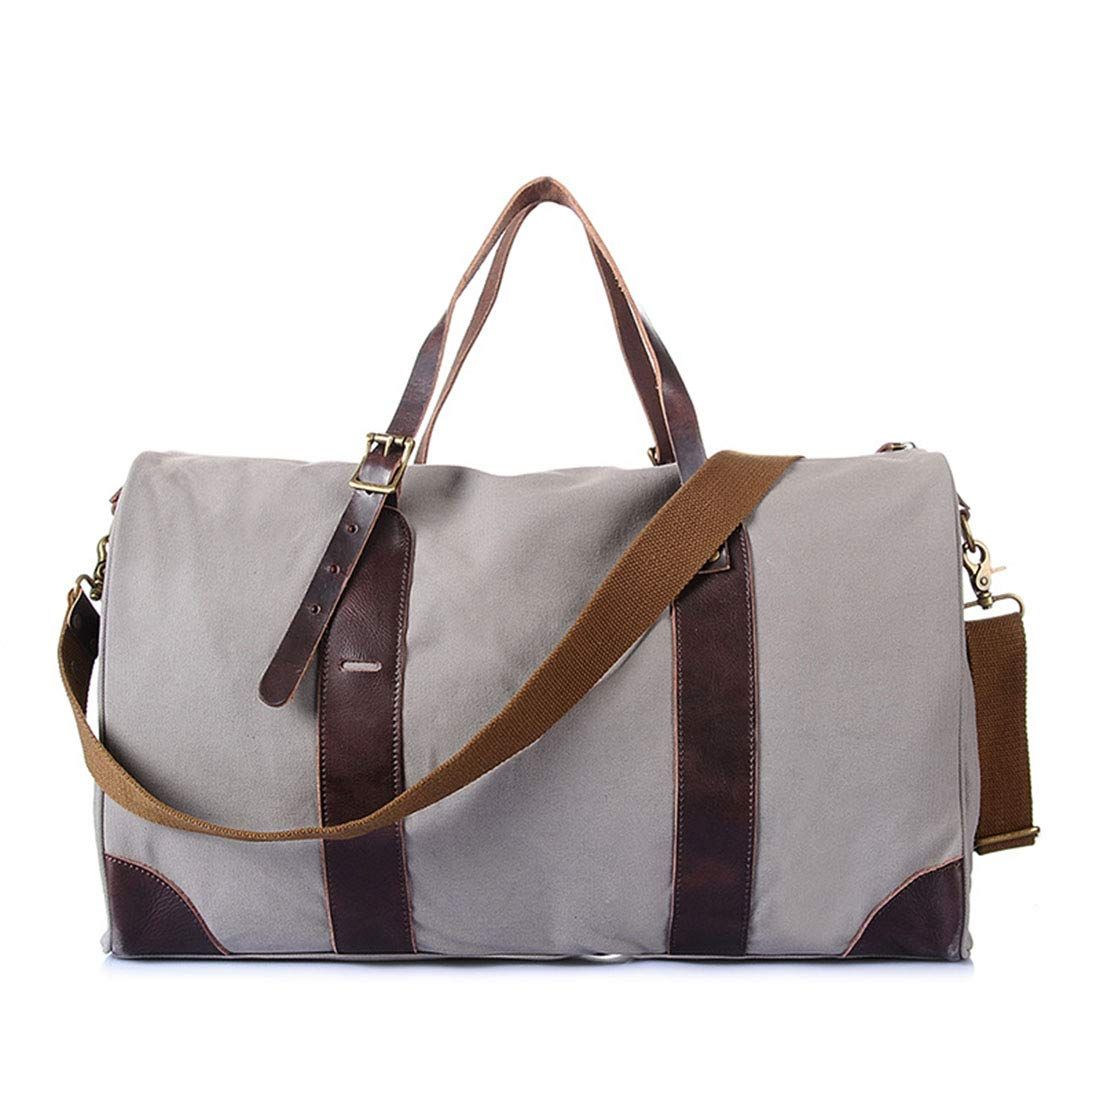 MATCHANT Canvas Travel Bags Canvas Luggage Bags Oversized Travel Bags Handbags Shoulder Bags Messenger Bags Large Capacity Travel Bags Color : Silver White